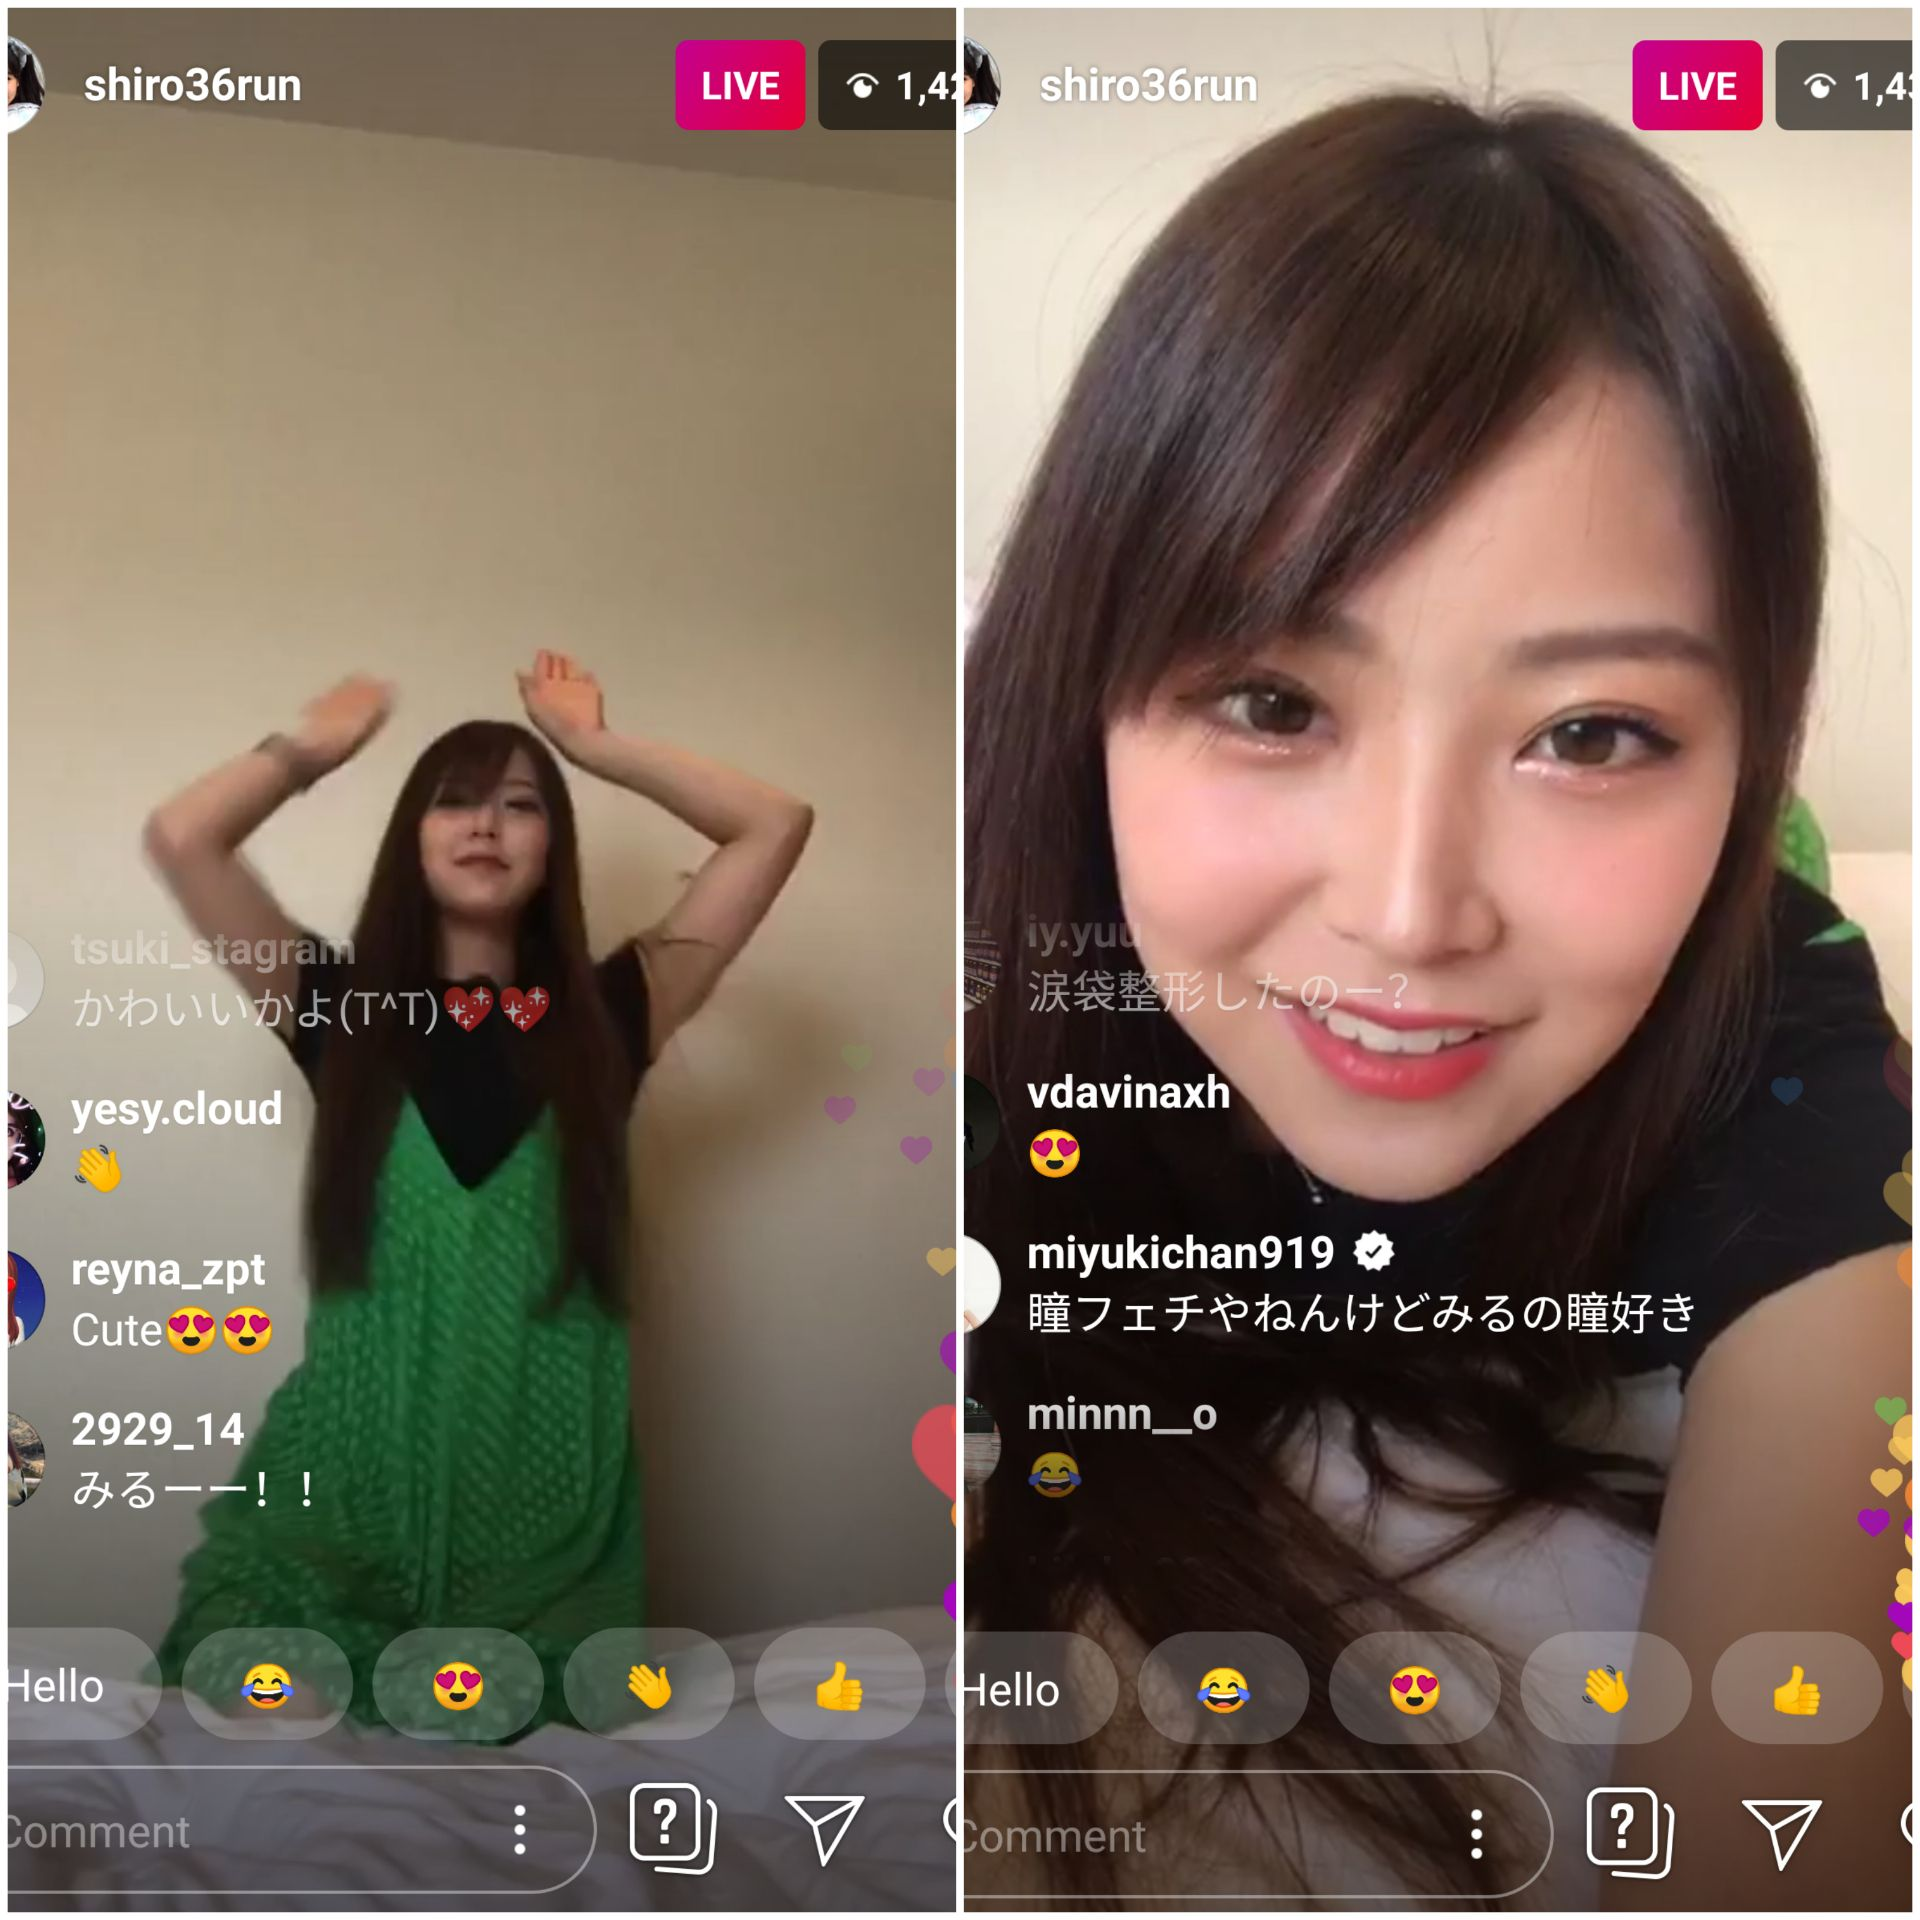 Mirurun's Instagram LIVE. She's cheeky and adorable and